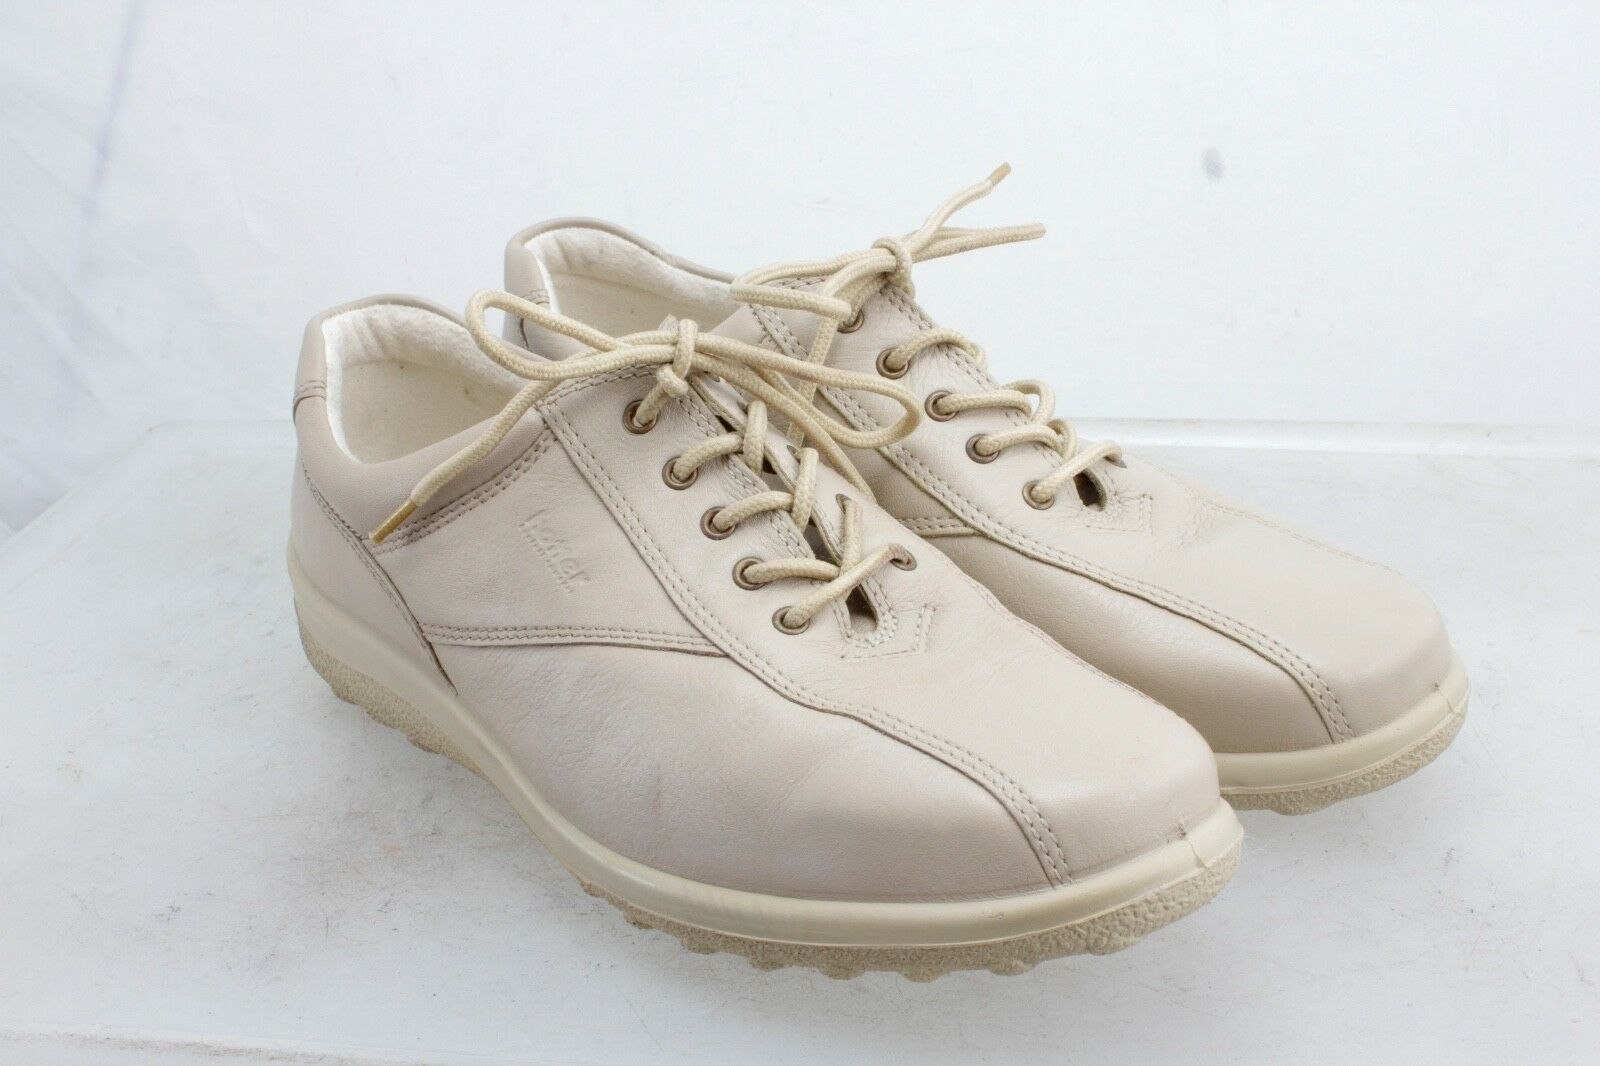 Hotter Comfort Concept Mens XXF Lace Up Leather shoes Lace Up Size 10 England